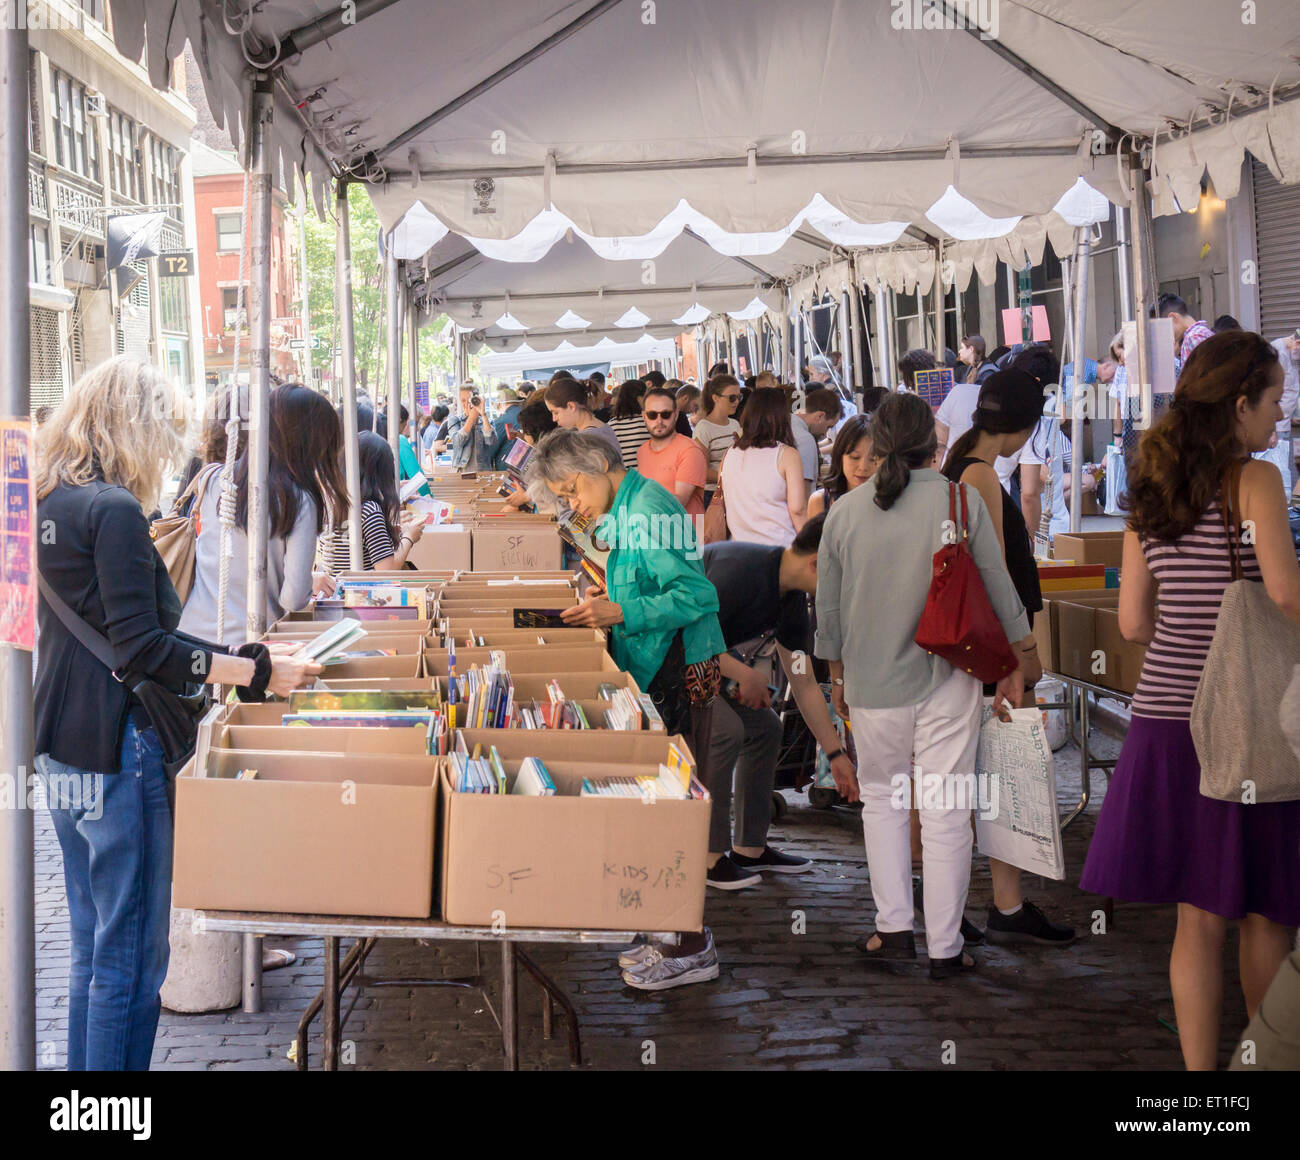 Shoppers search for bargains amidst the chaos of the Housing Works street fair on Crosby Streetin the New York neighborhood Stock Photo